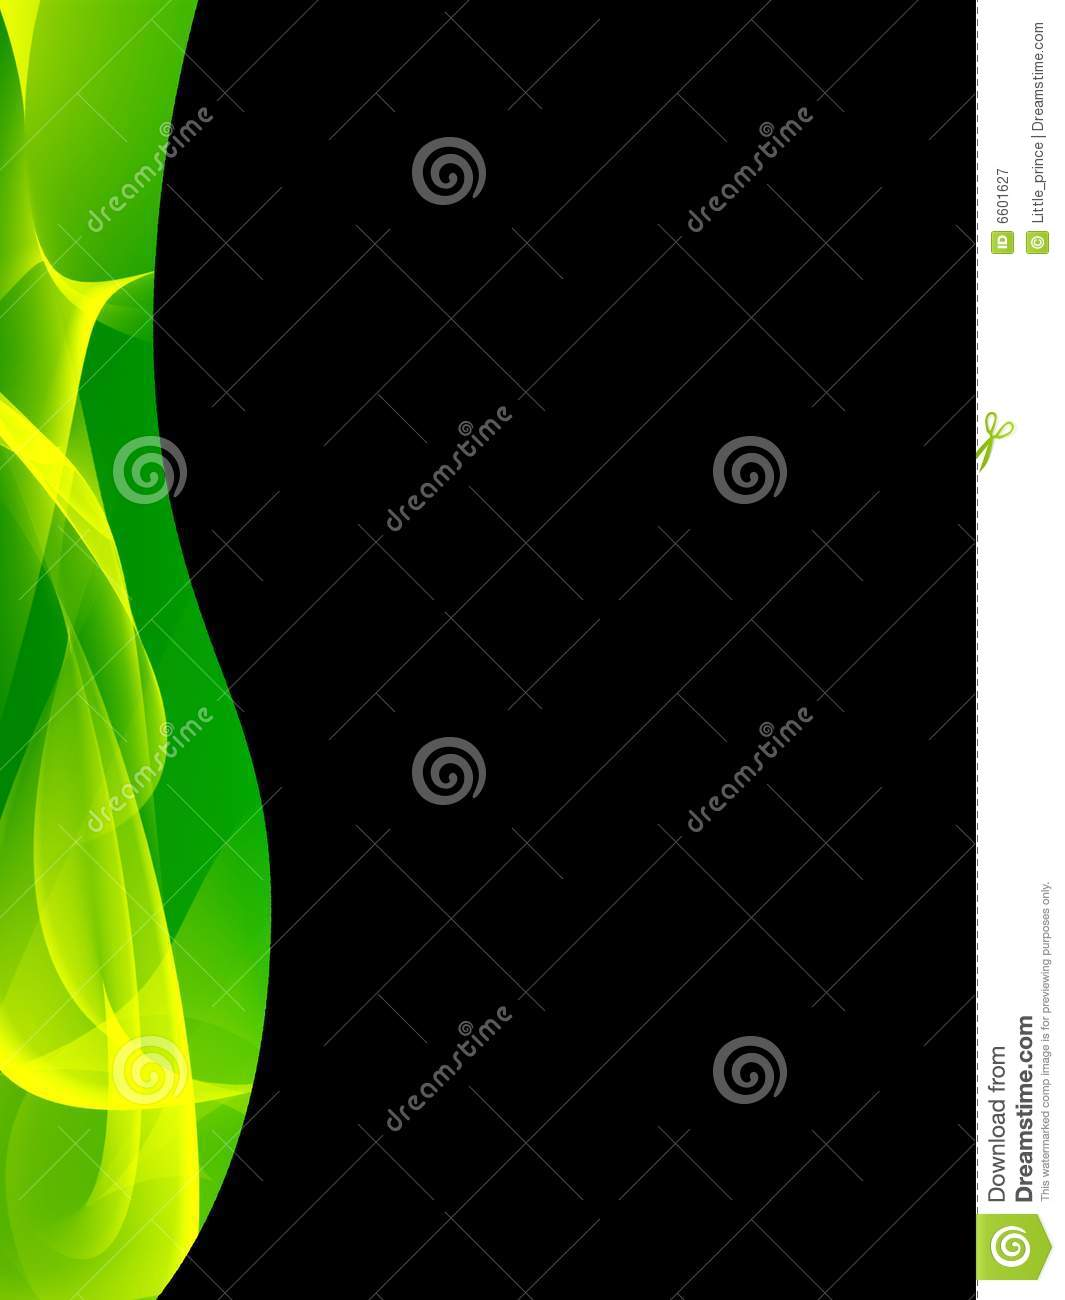 Green and black abstract background